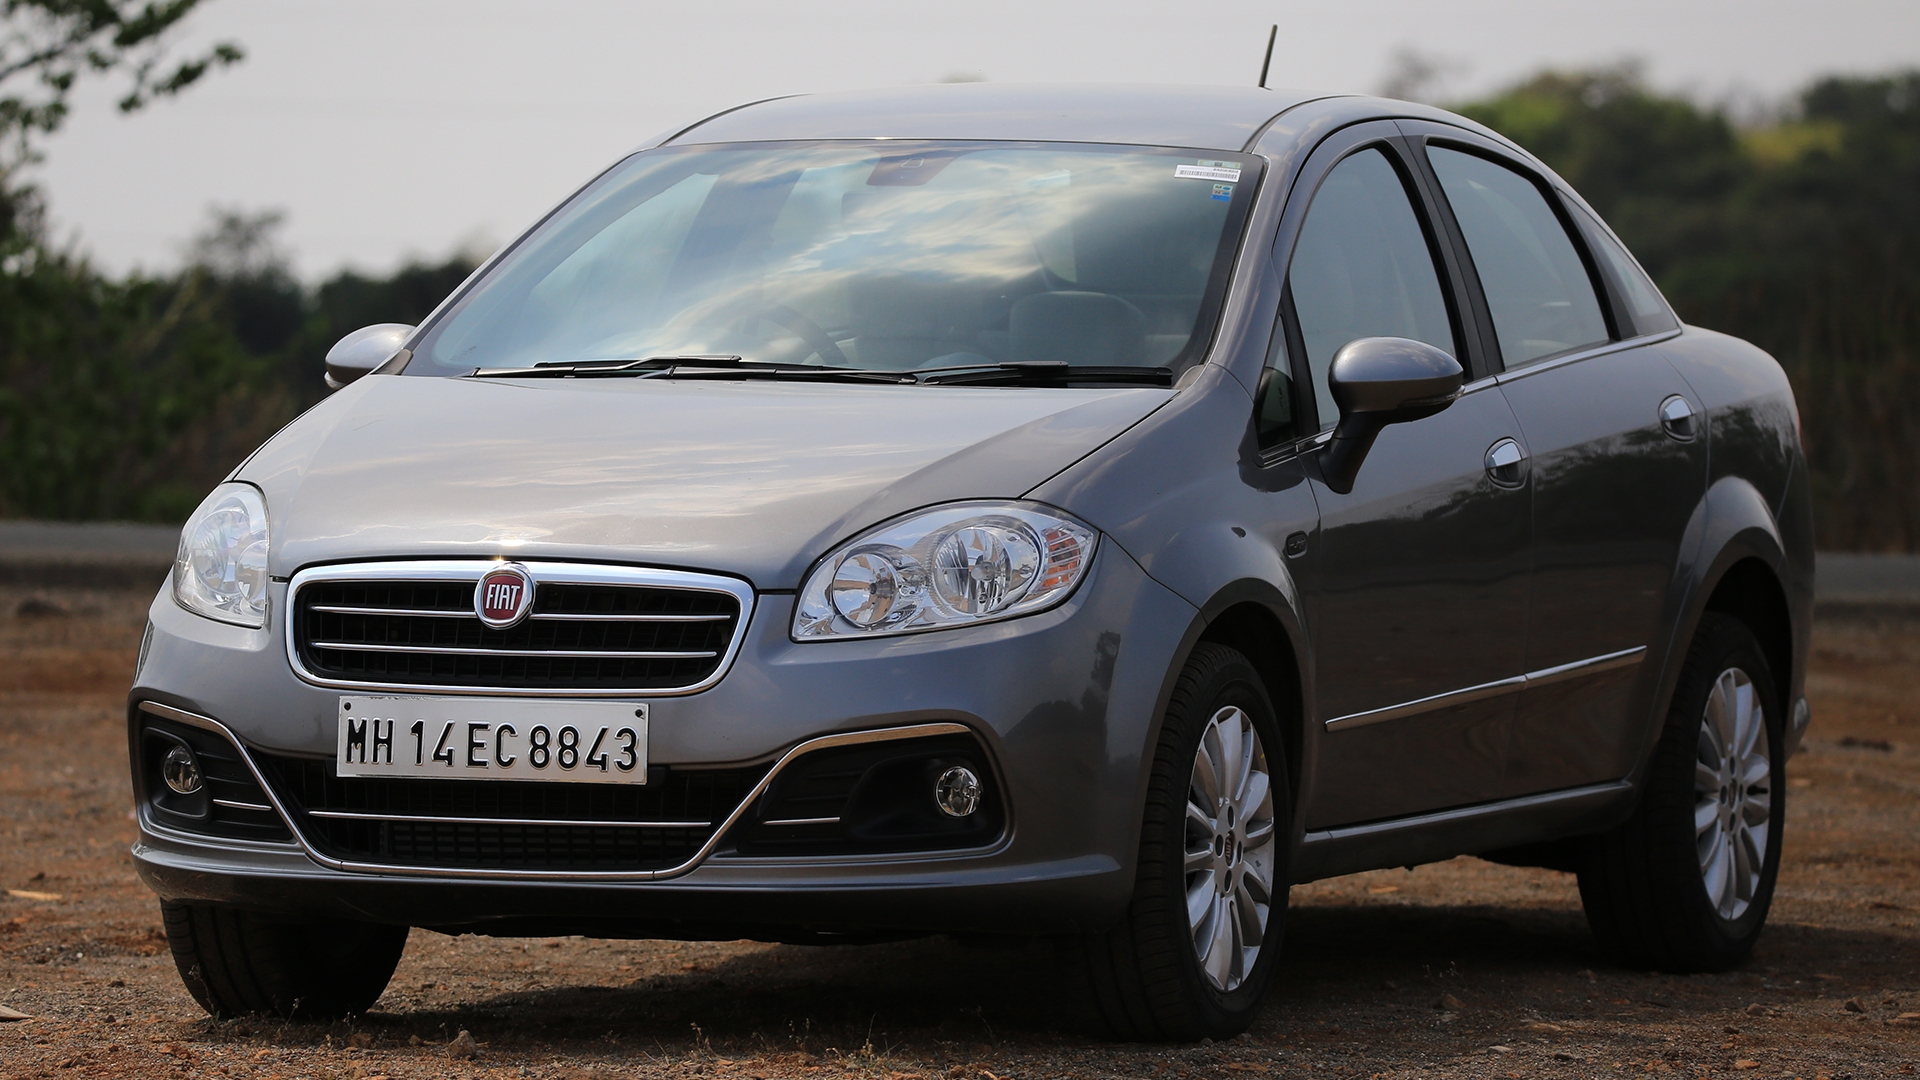 fiat linea 2014 price mileage reviews specification gallery overdrive. Black Bedroom Furniture Sets. Home Design Ideas